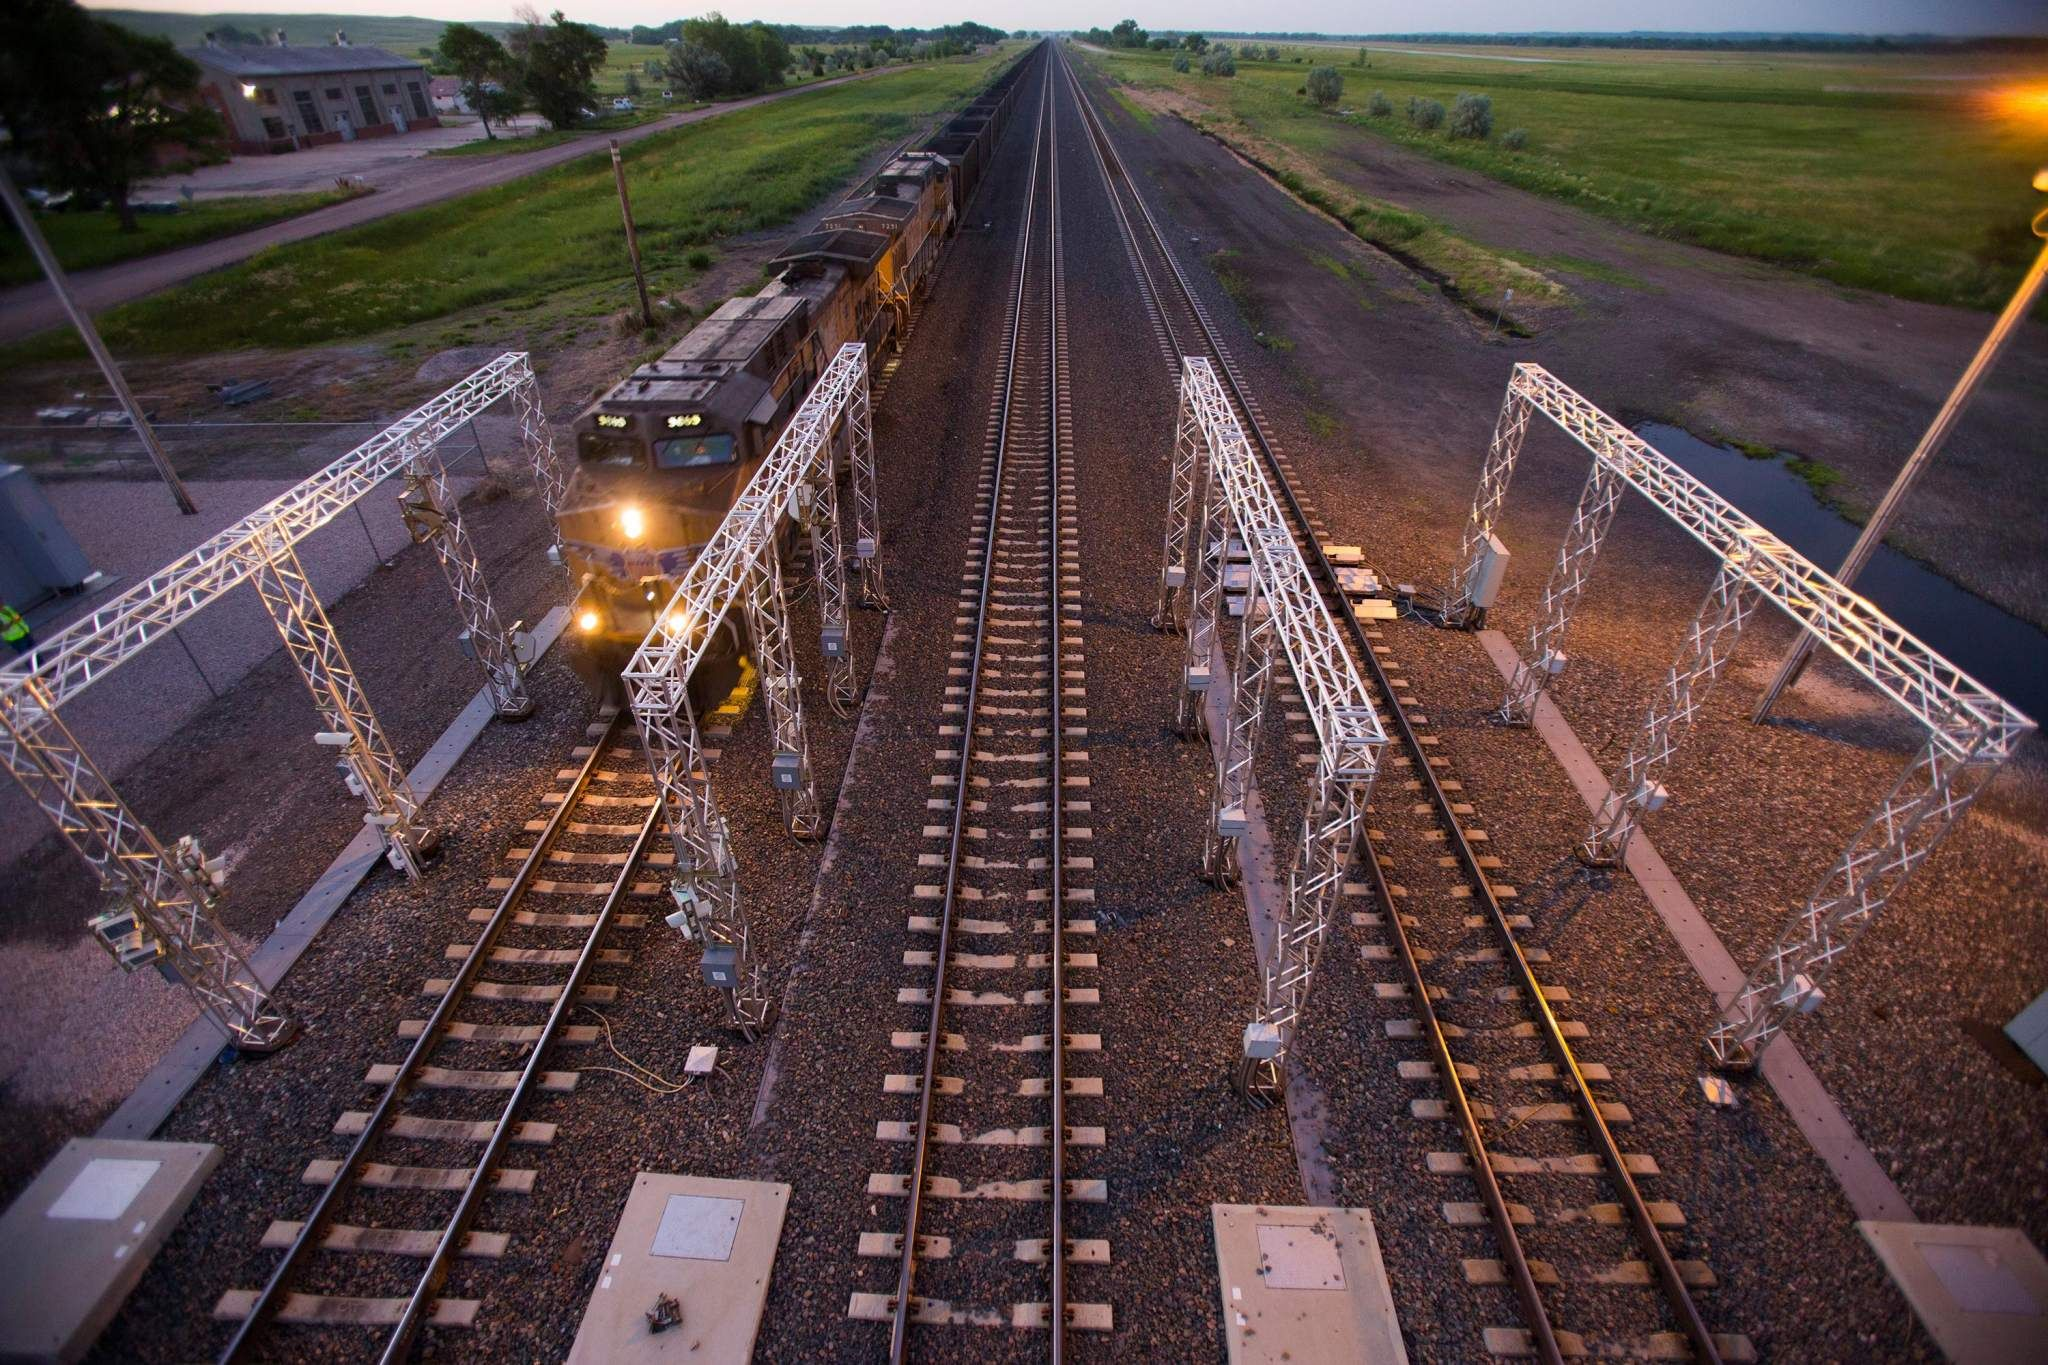 Union Pacific 3D printing for railroad machine vision